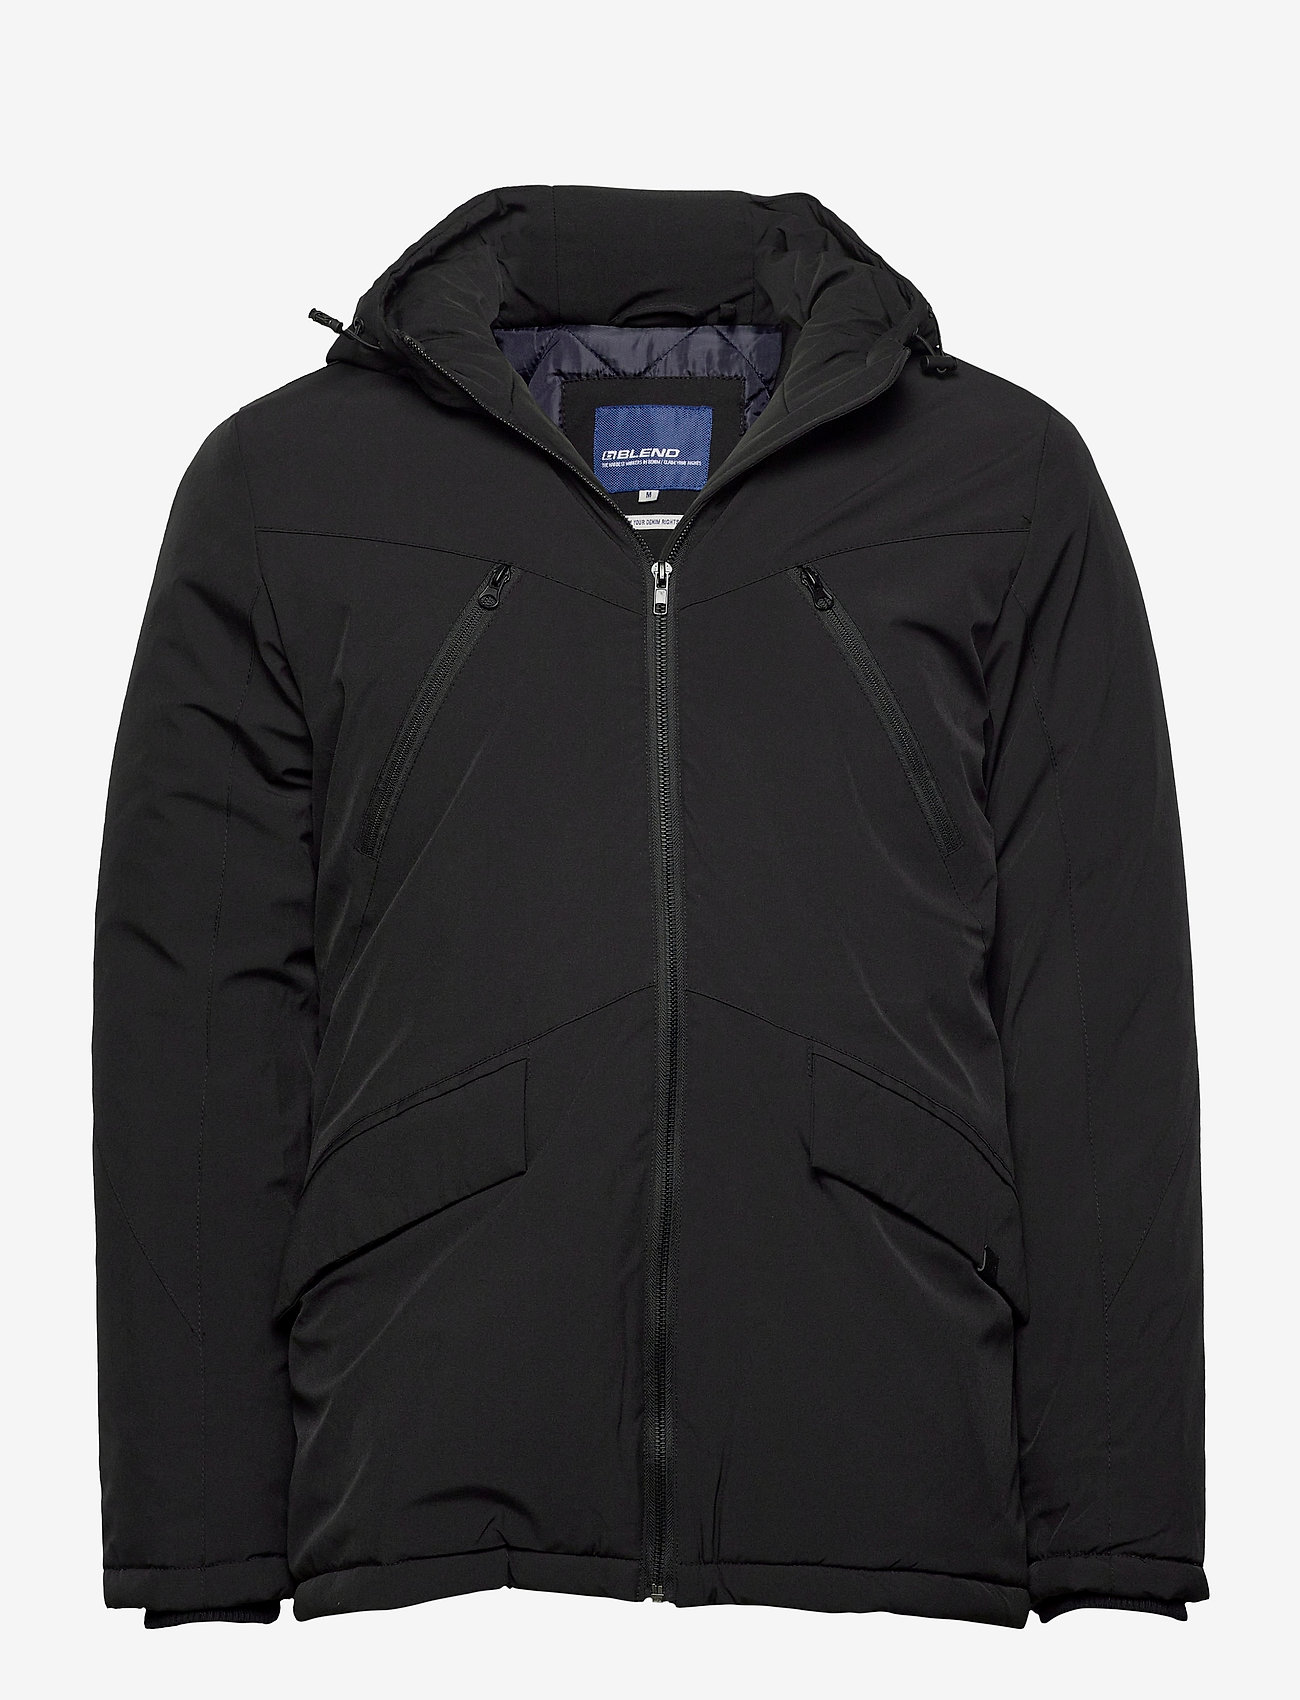 Blend - Outerwear - padded jackets - black - 0